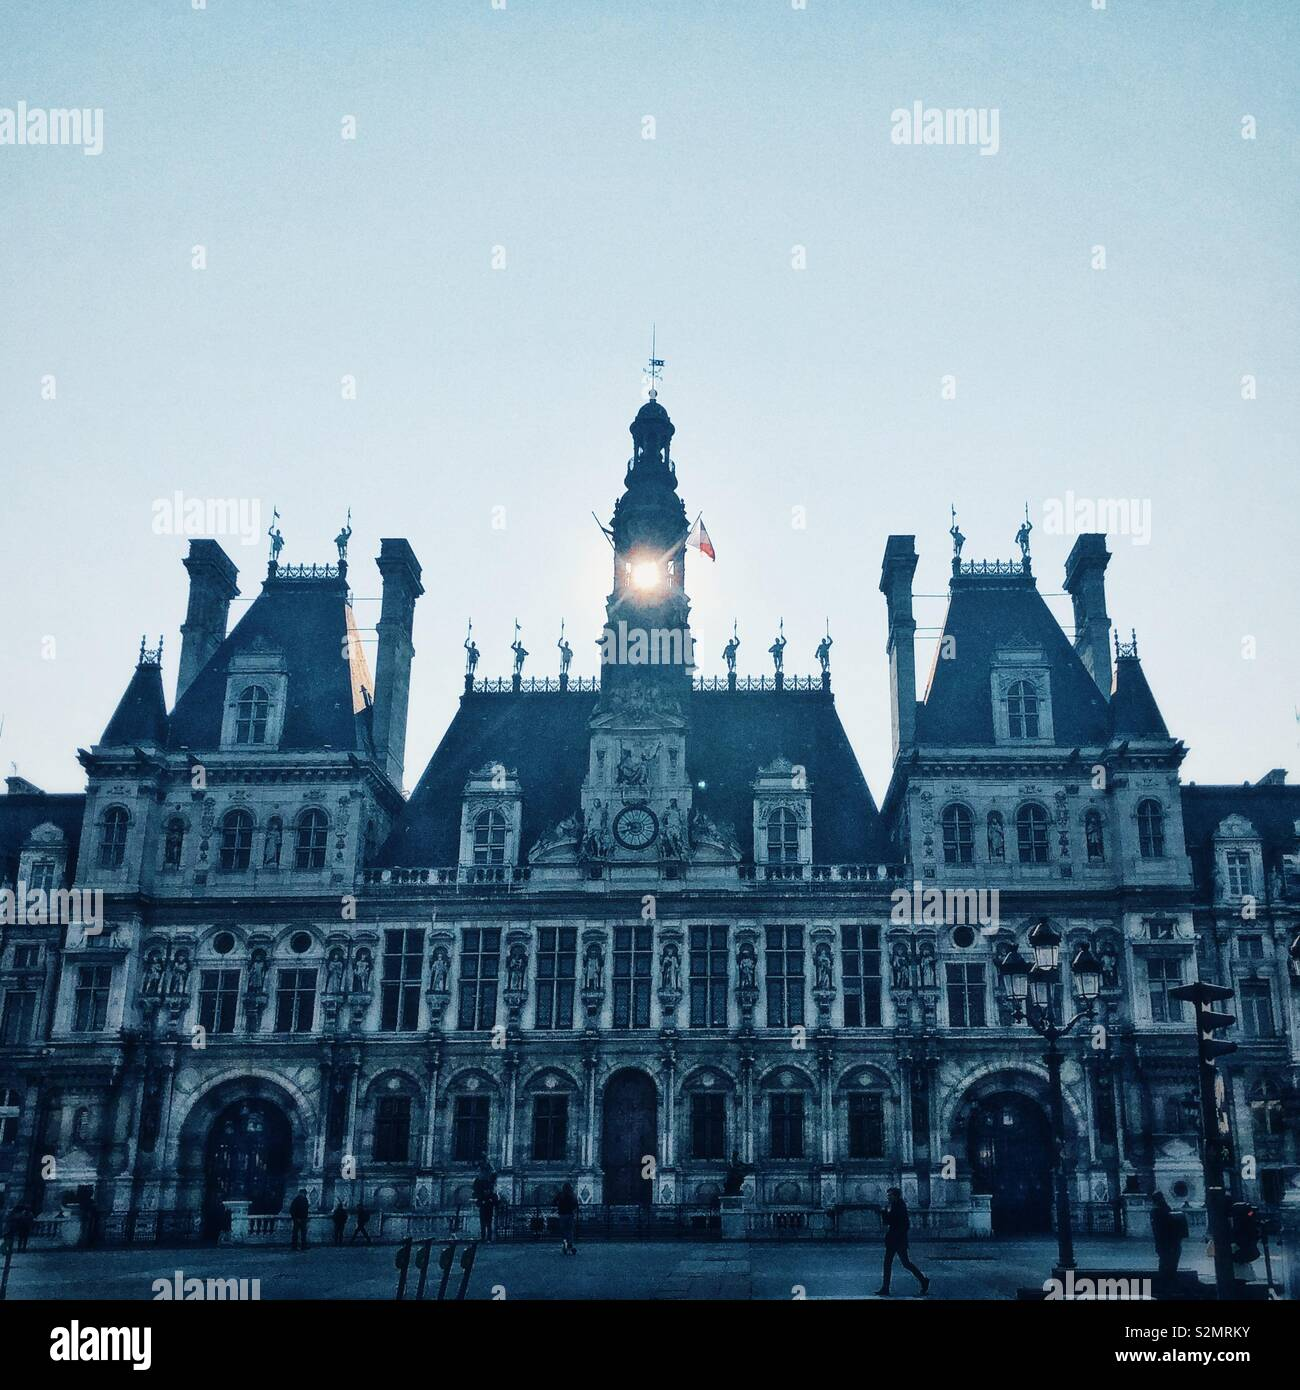 Infamous Hotel de Ville in Paris - Stock Image